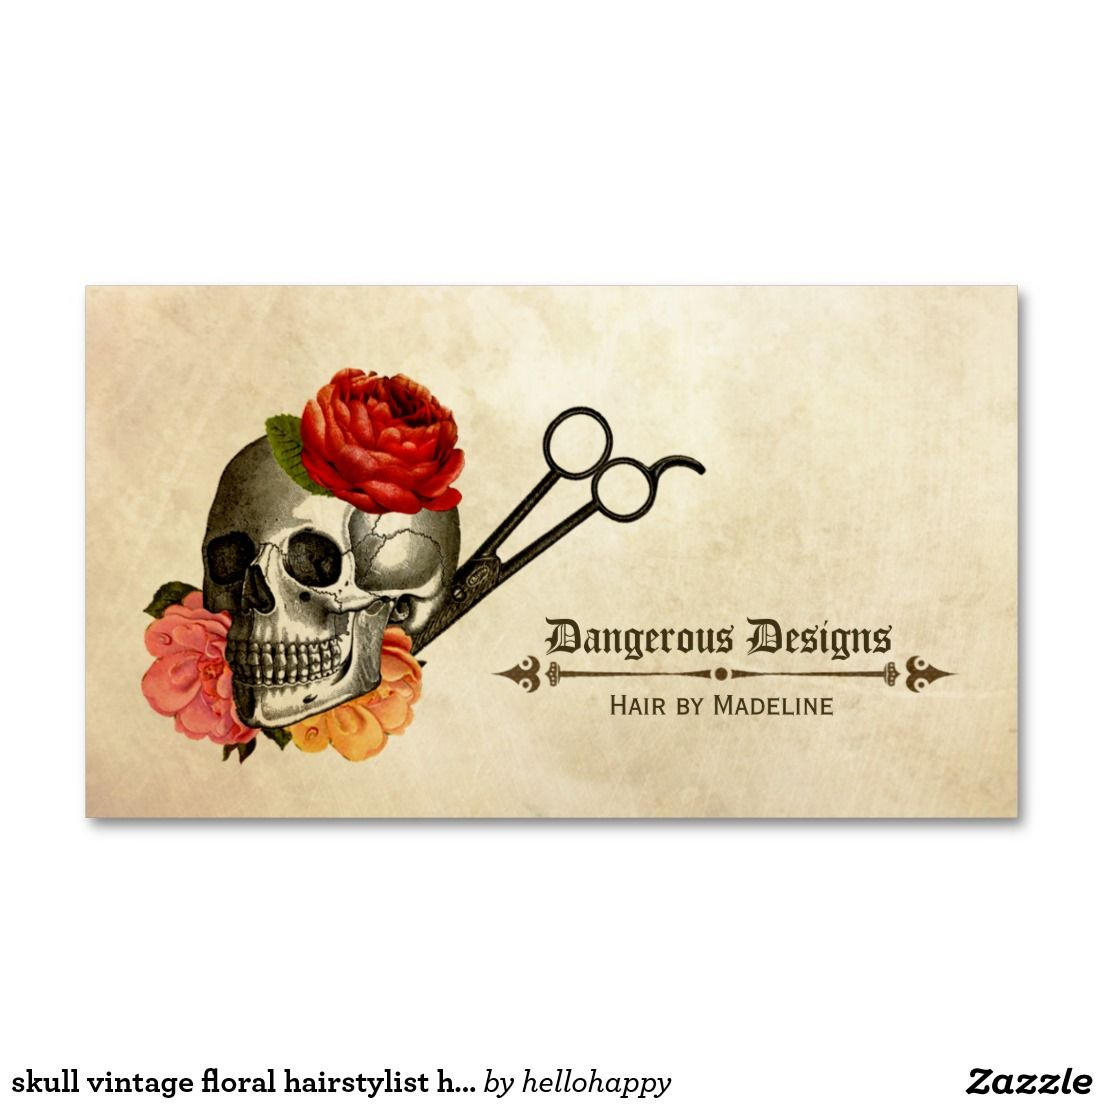 Skull vintage floral hairstylist hair stylist business card skull vintage floral hairstylist hair stylist pack of standard business cards reheart Image collections